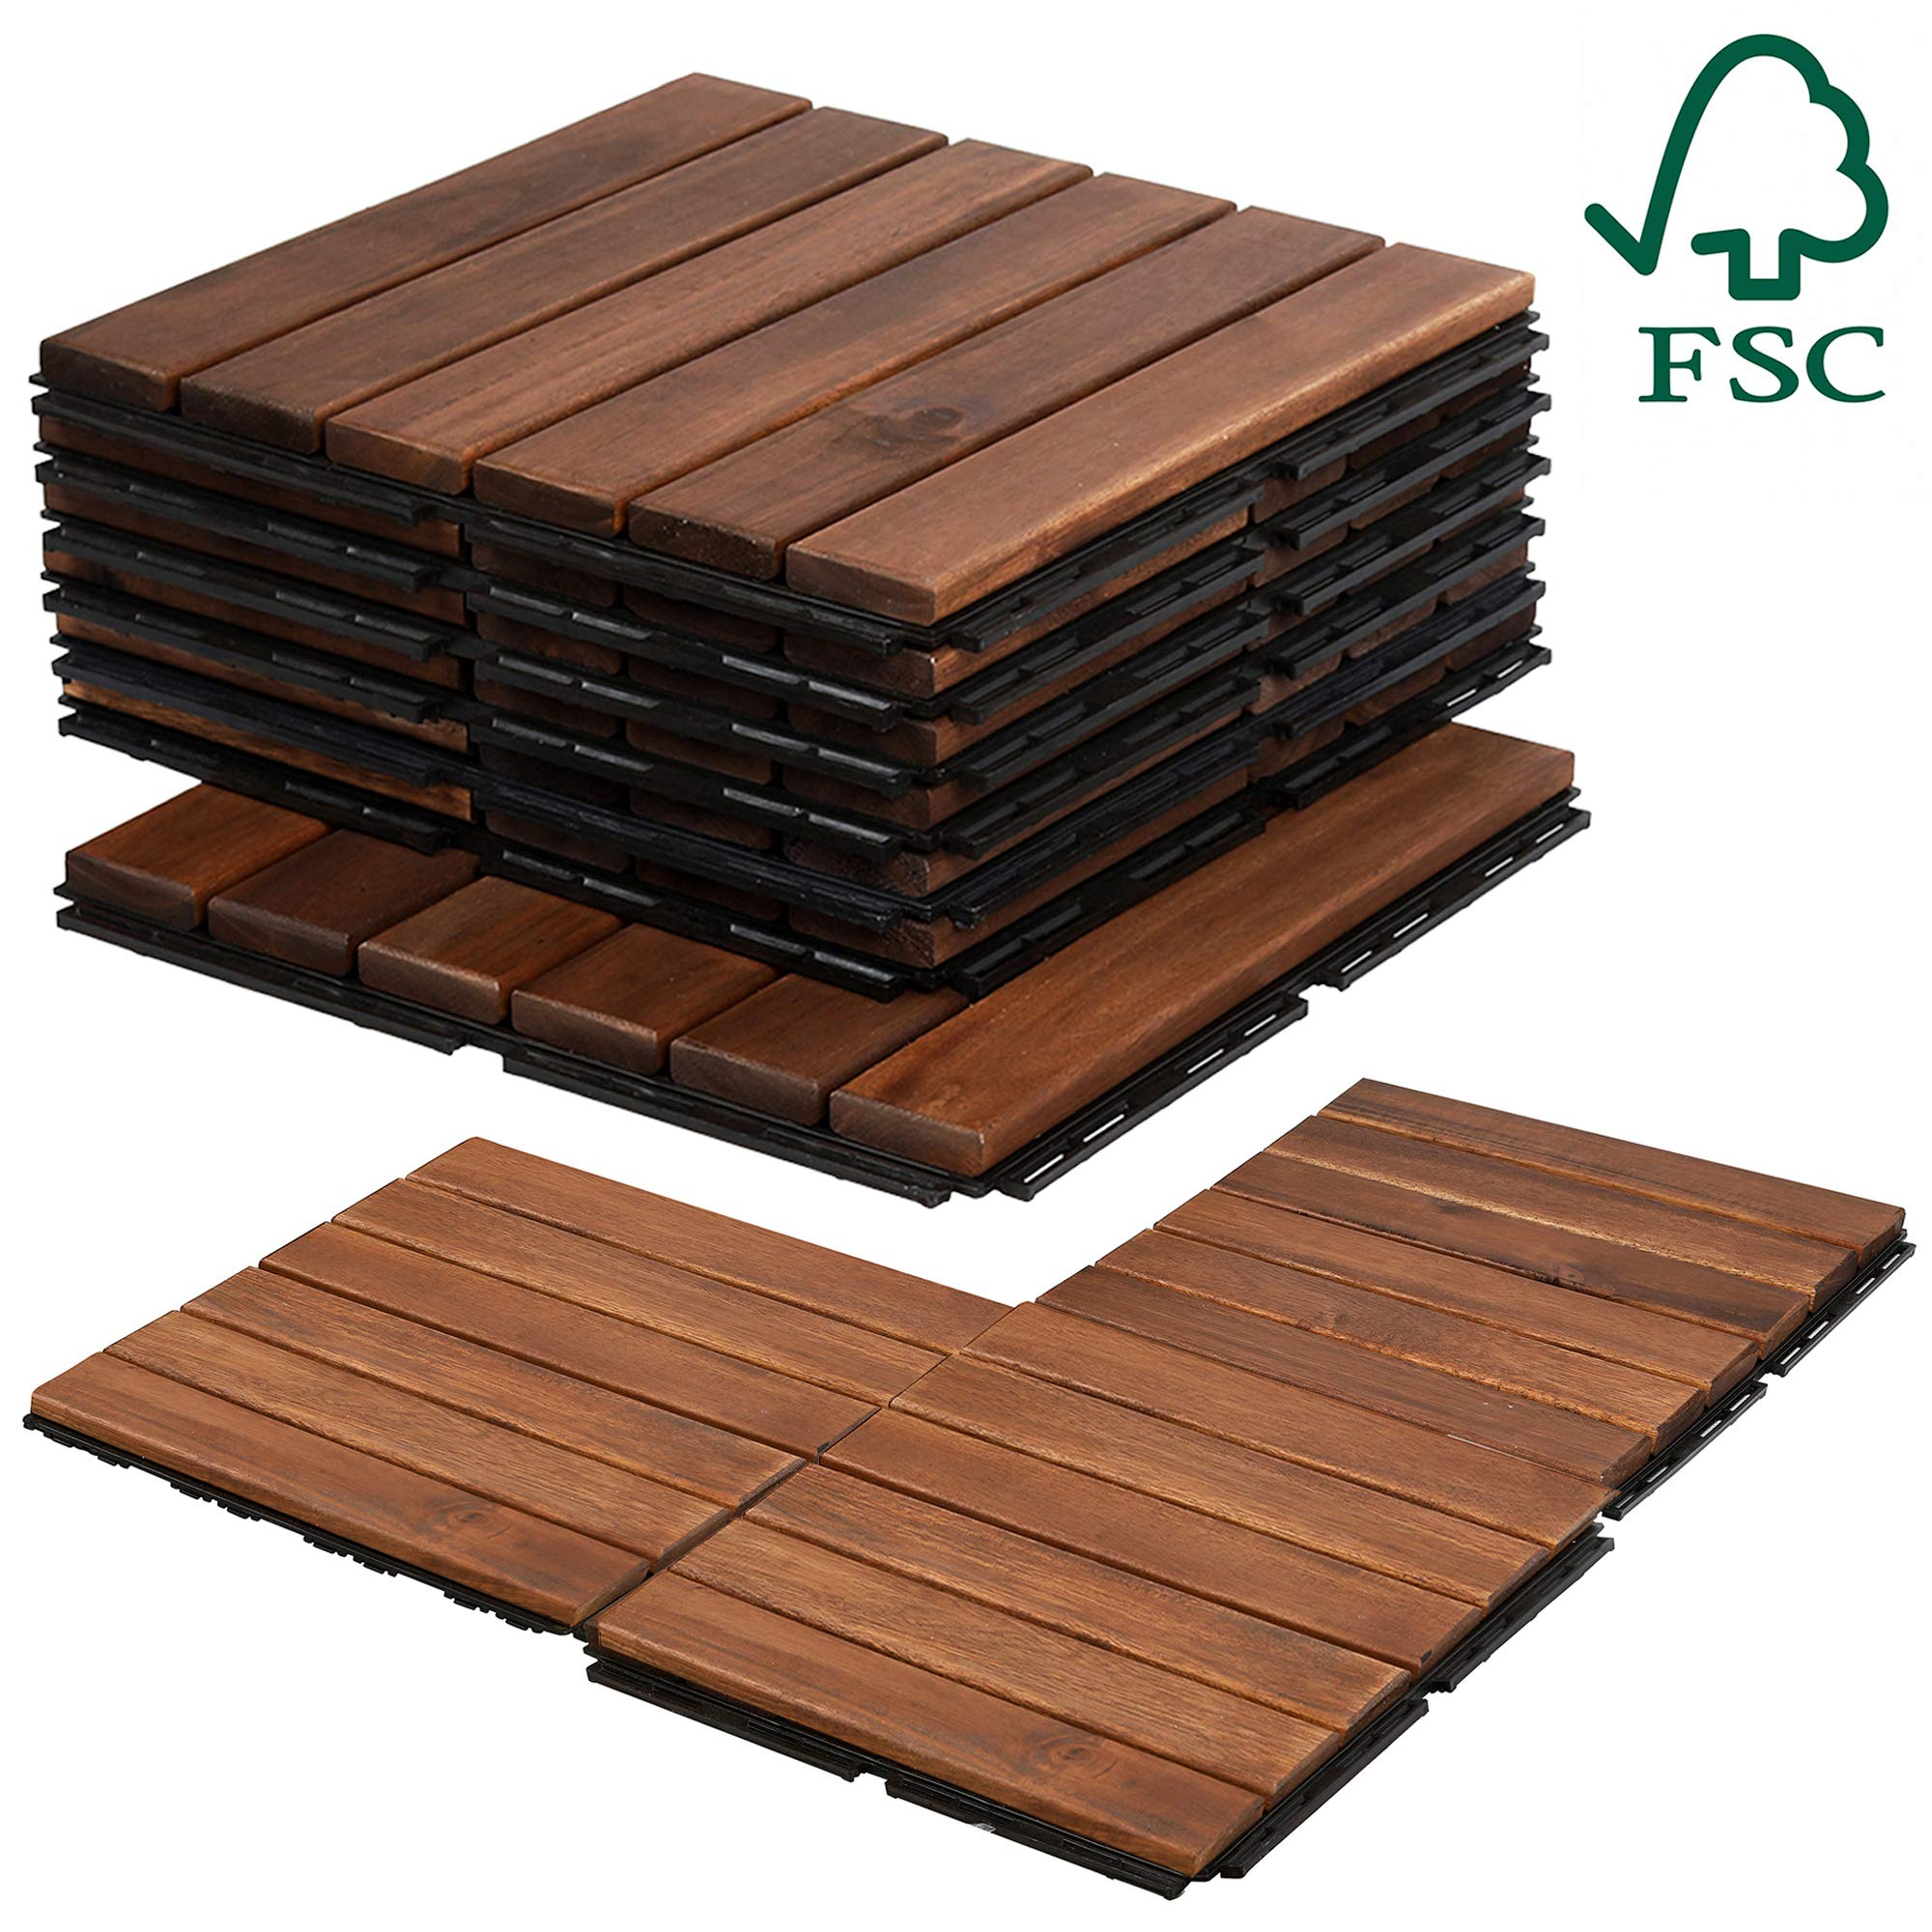 Mammoth Easy Lock Sustainably Sourced Solid Acacia Wood Oiled Finish Interlocking Deck Tiles, Water Resistant Outdoor Patio Pavers or Composite Decking Flooring, Pack of 11 (11 SQFT) (Stripe (6 Slat)) by MAMMOTH